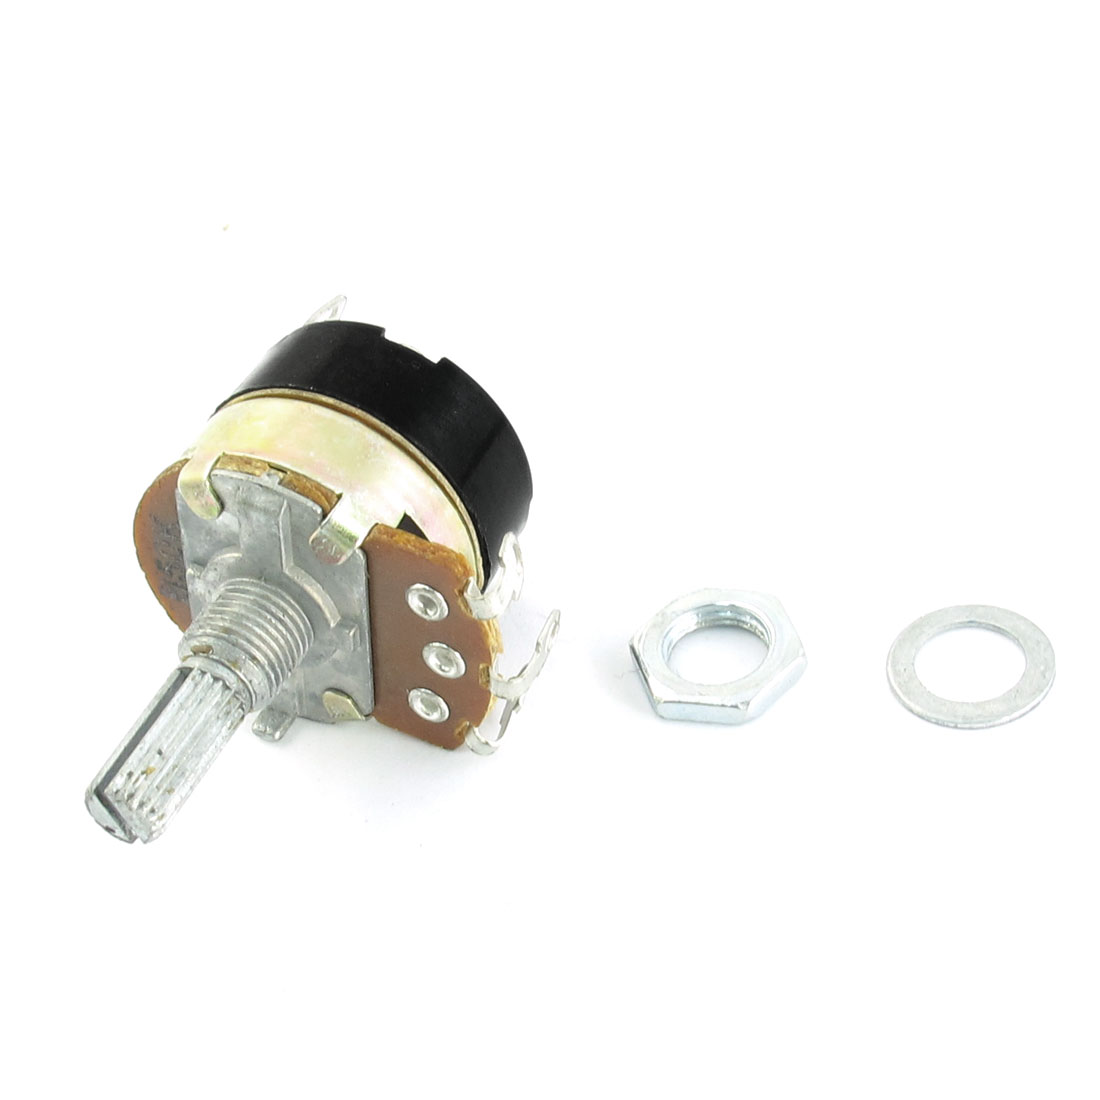 B150K 150K Ohm 6mm Knurled Shaft 8mm Thread 5 Terminals Linear Single Turn Top Adjustable Rotary Taper Potentiometer Switch